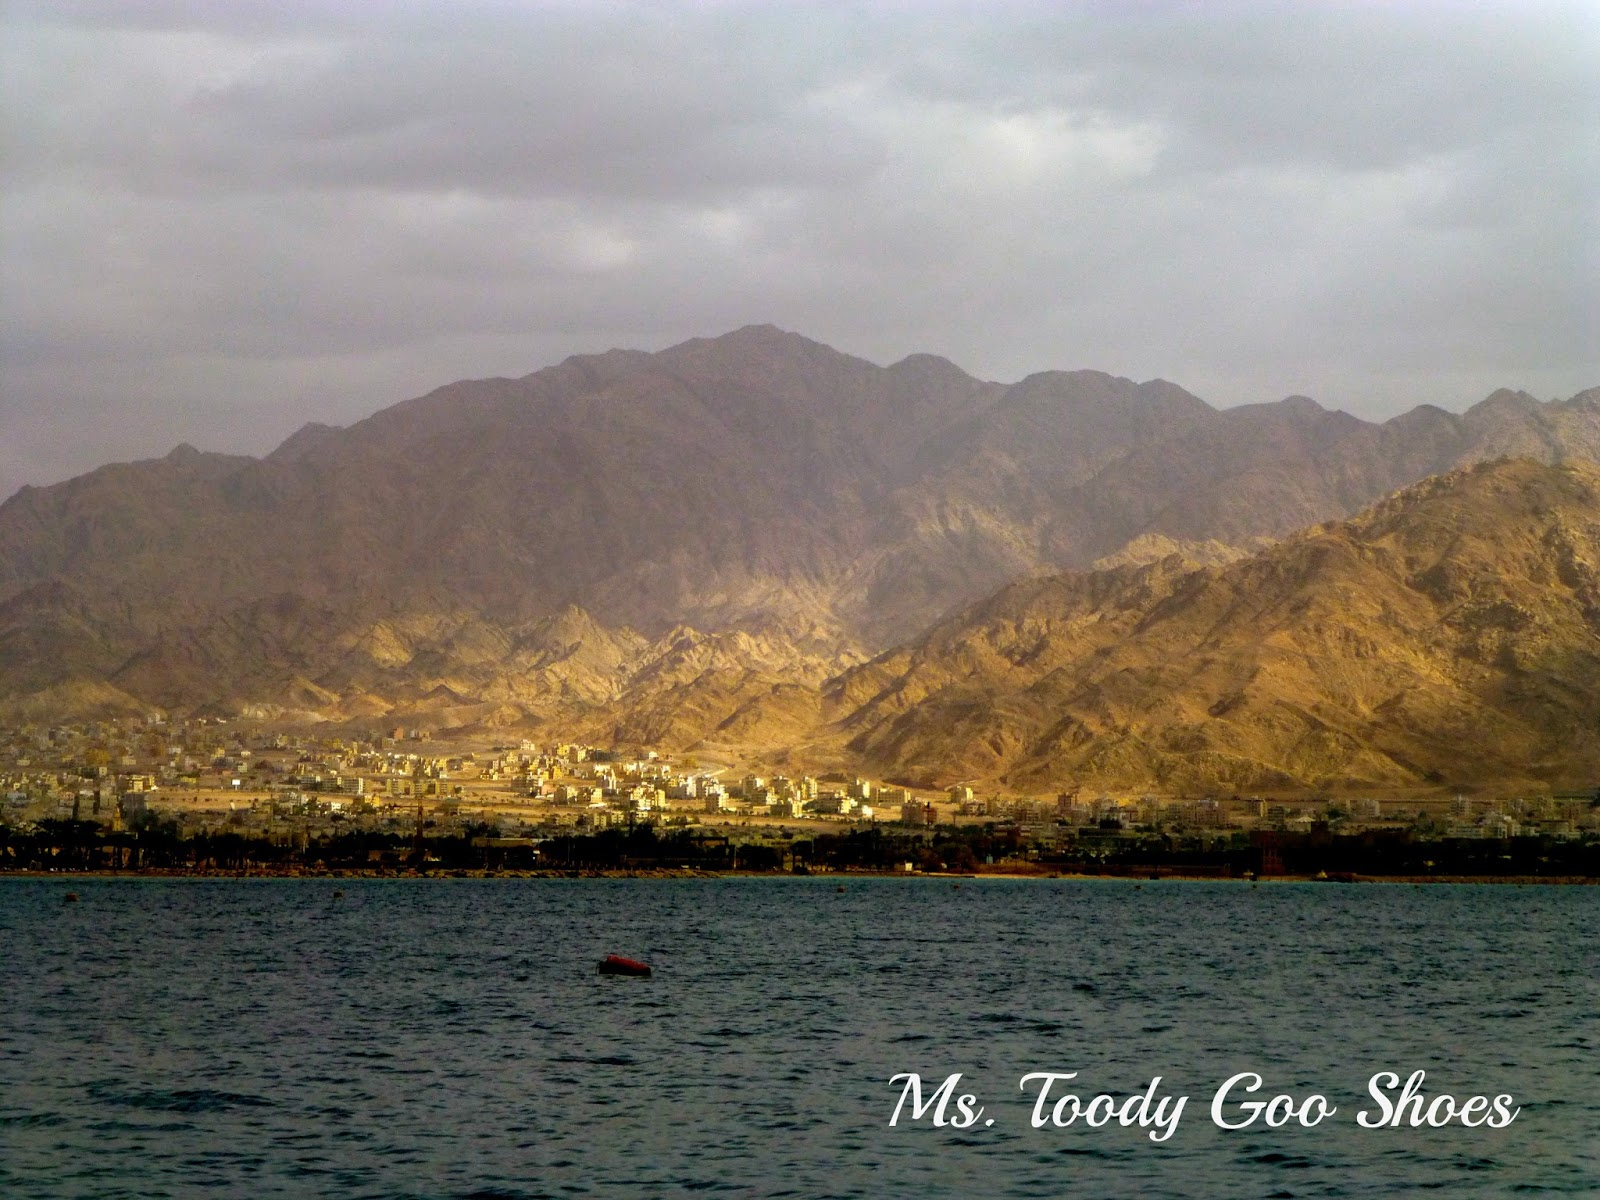 View of Jordan from Eilat, Israel --- Ms. Toody Goo Shoes